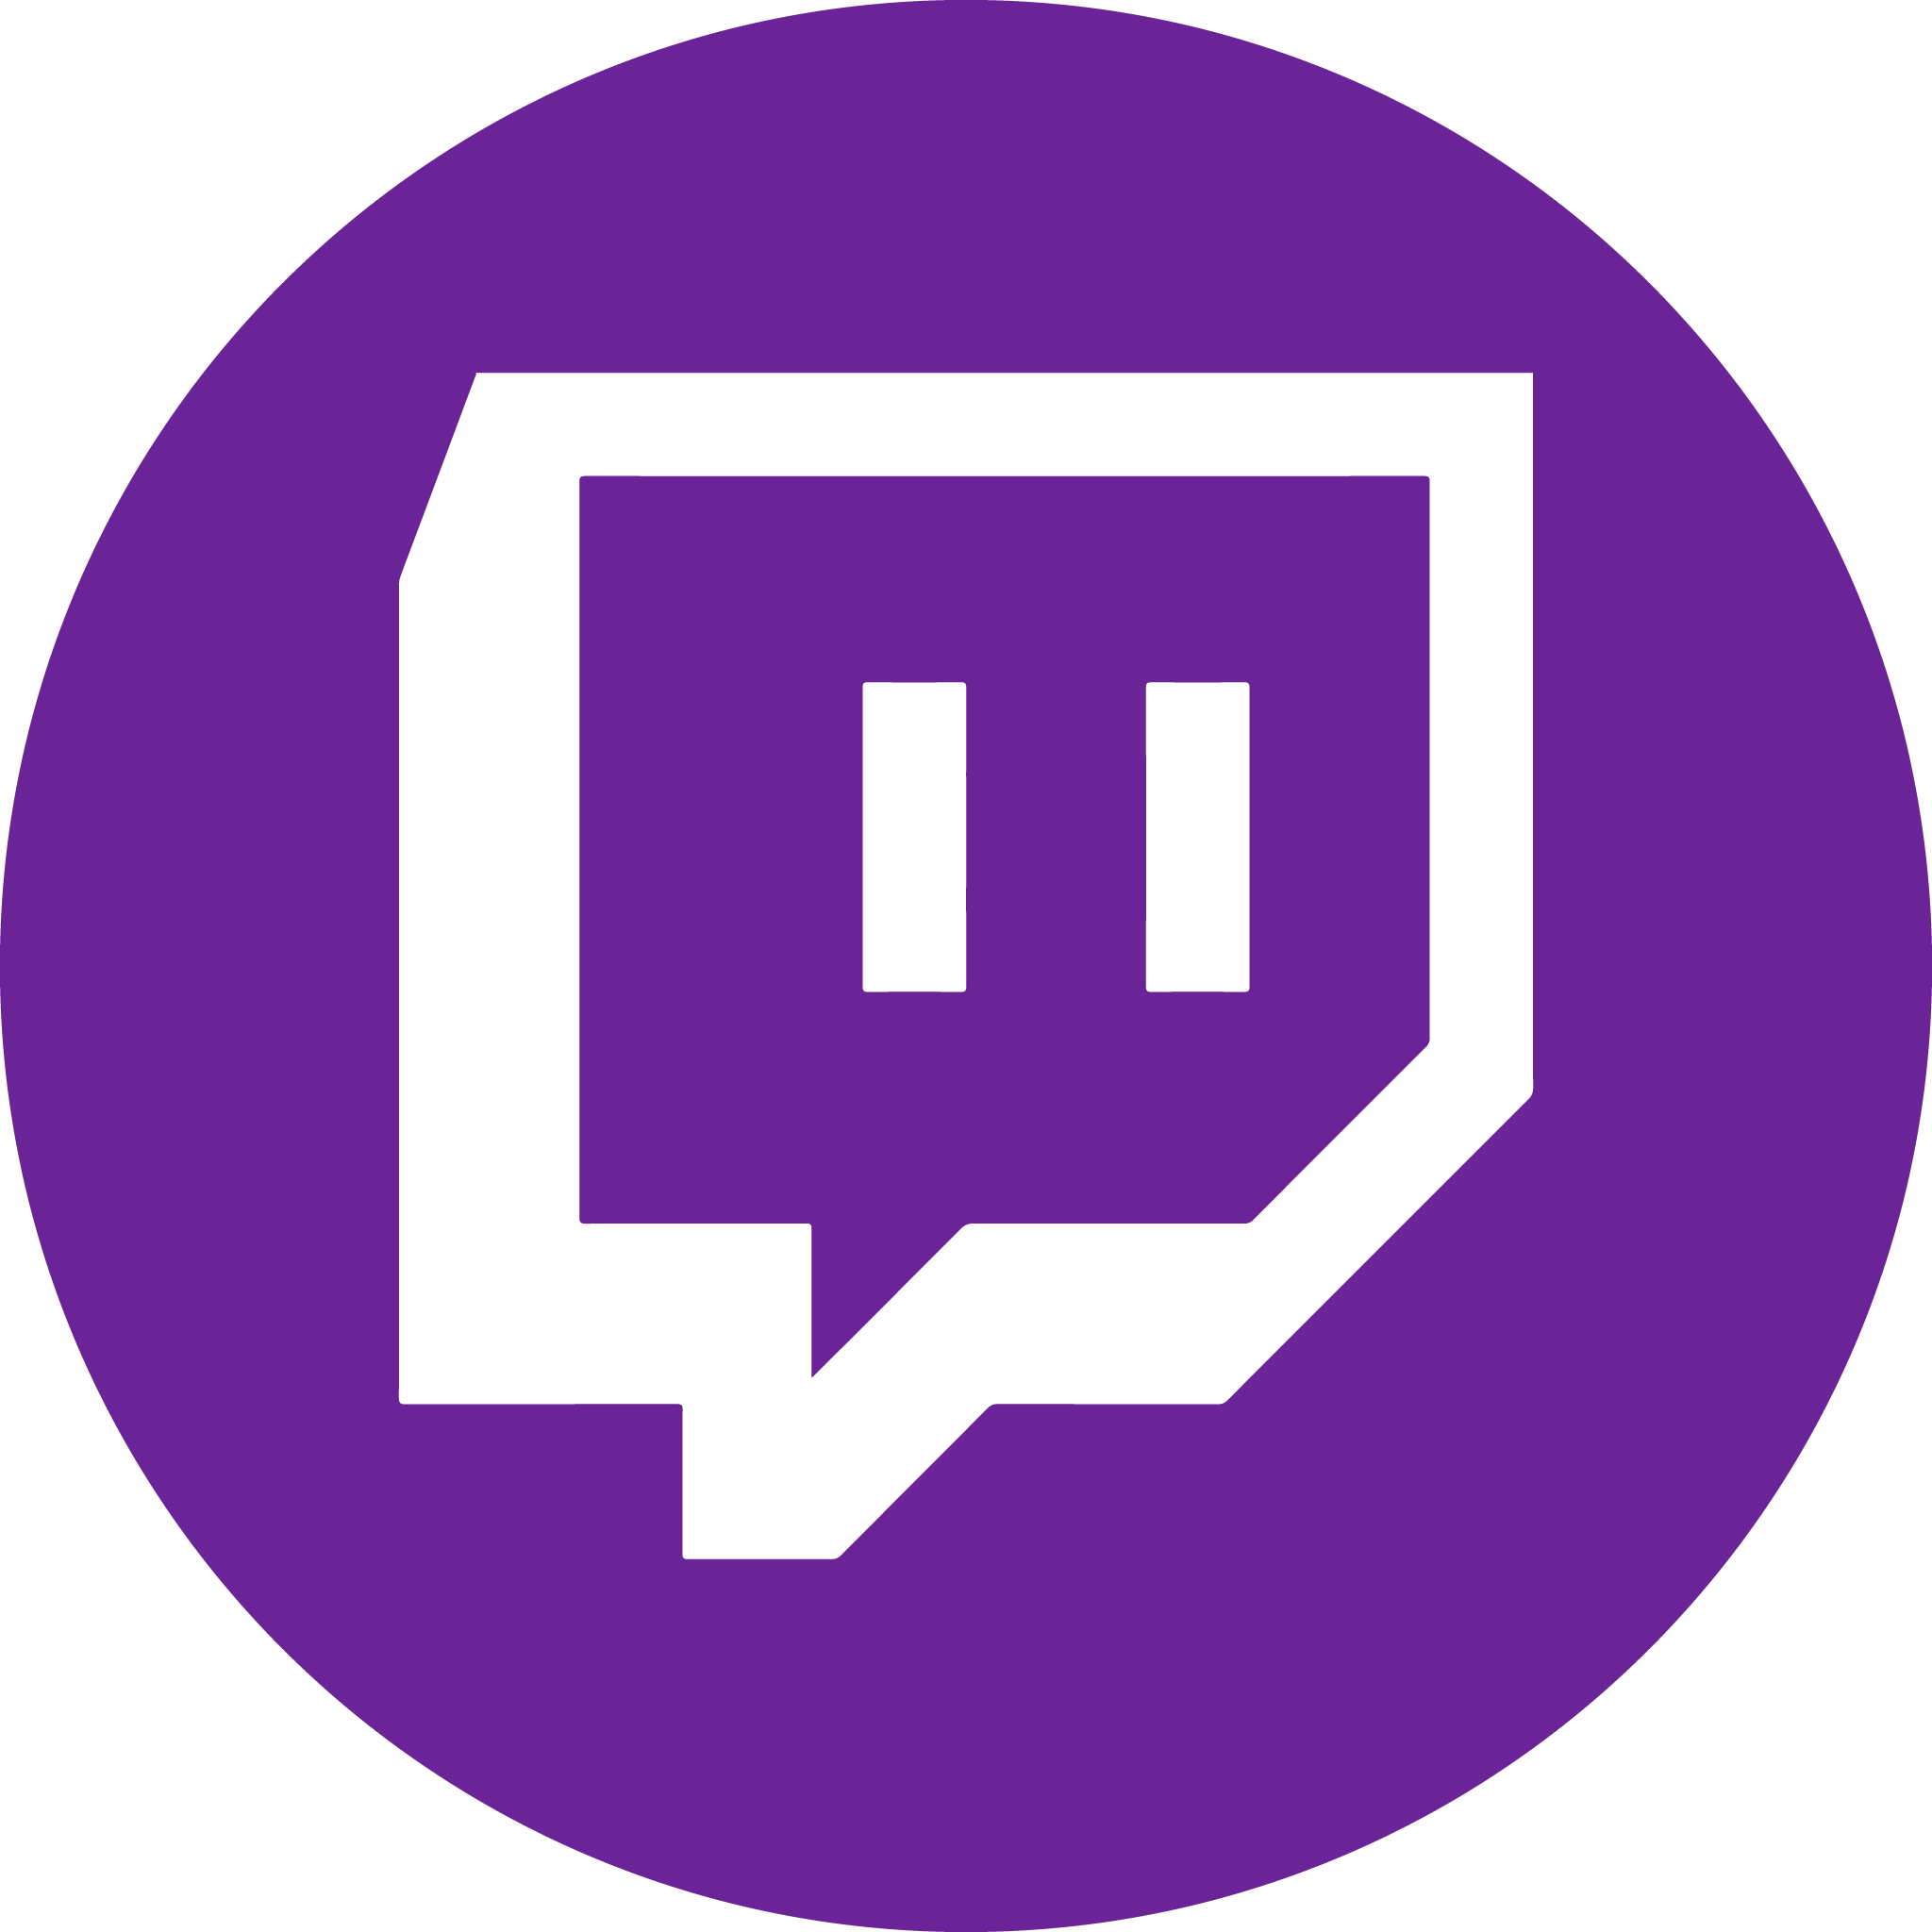 purple twitch logo png #1873